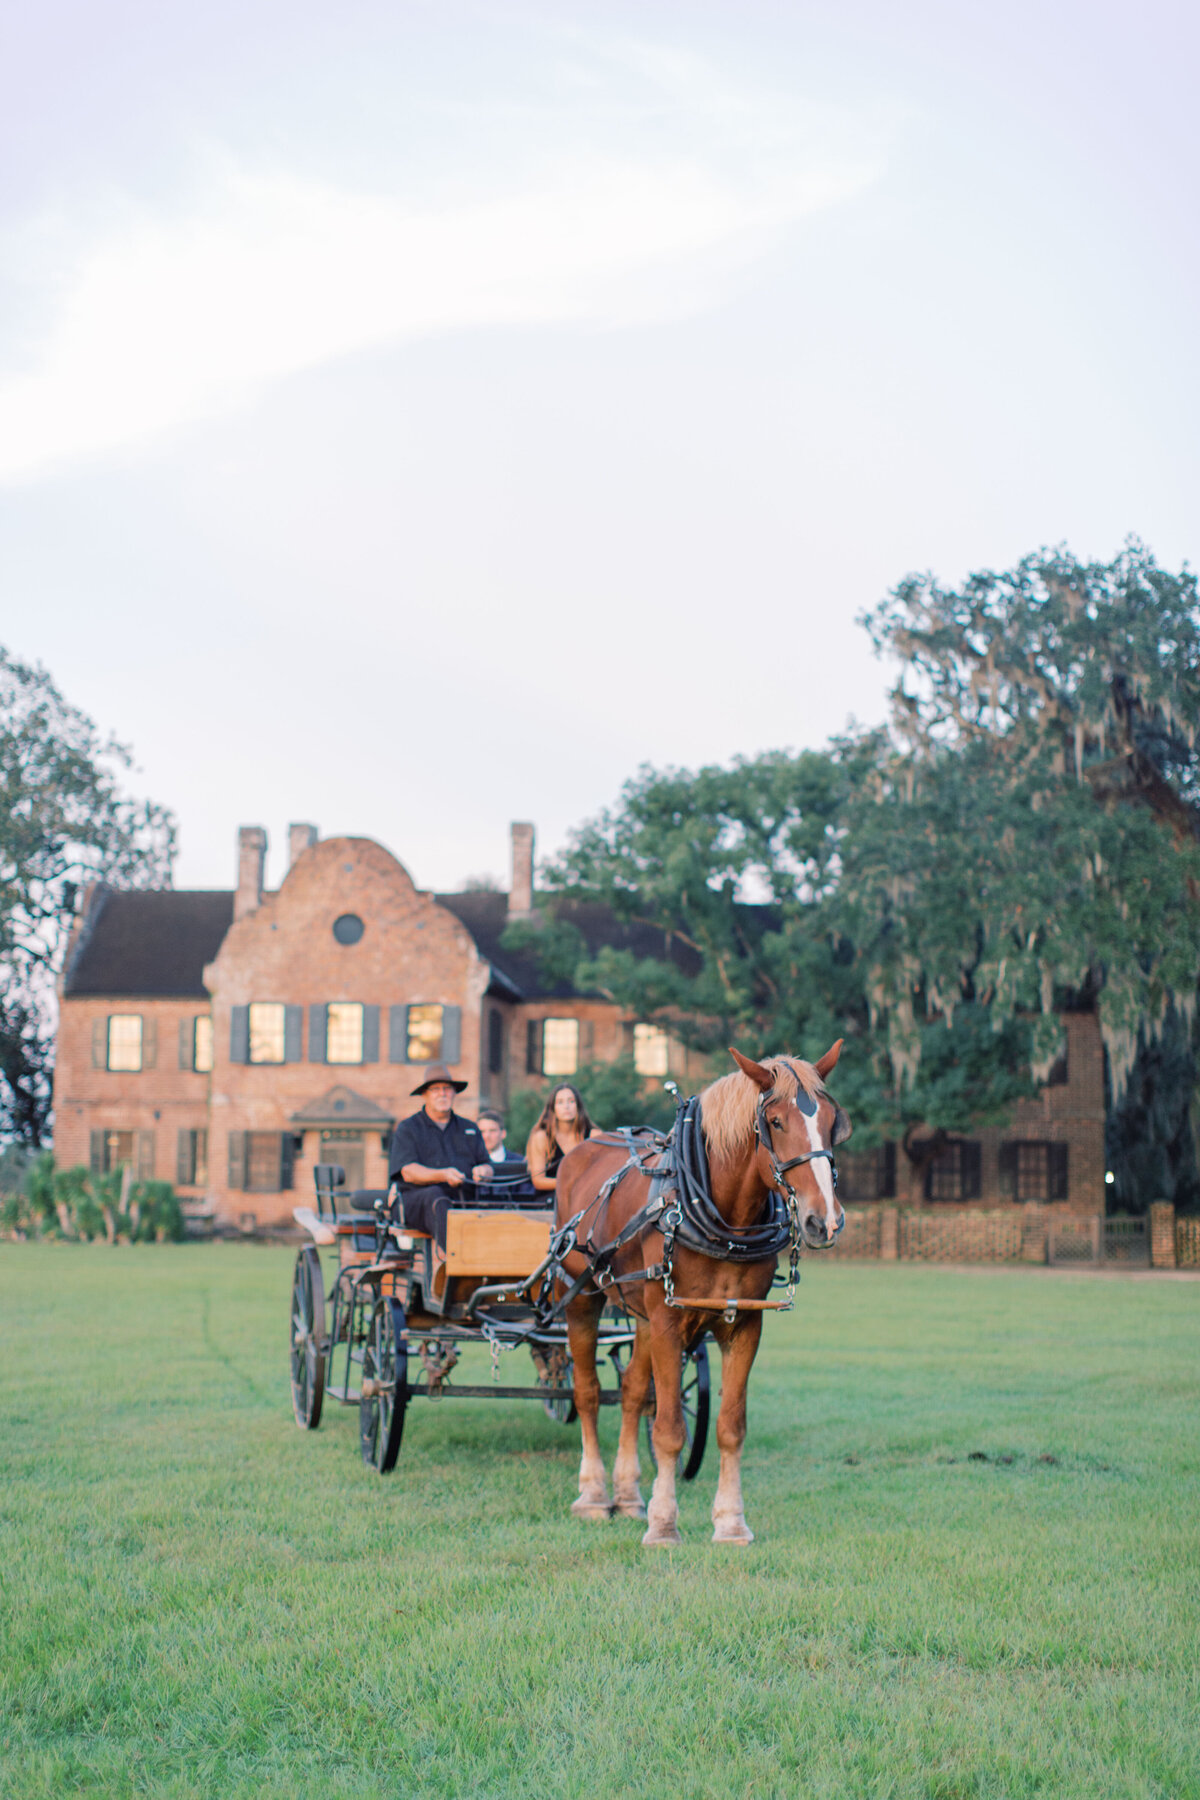 Melton_Wedding__Middleton_Place_Plantation_Charleston_South_Carolina_Jacksonville_Florida_Devon_Donnahoo_Photography__0845